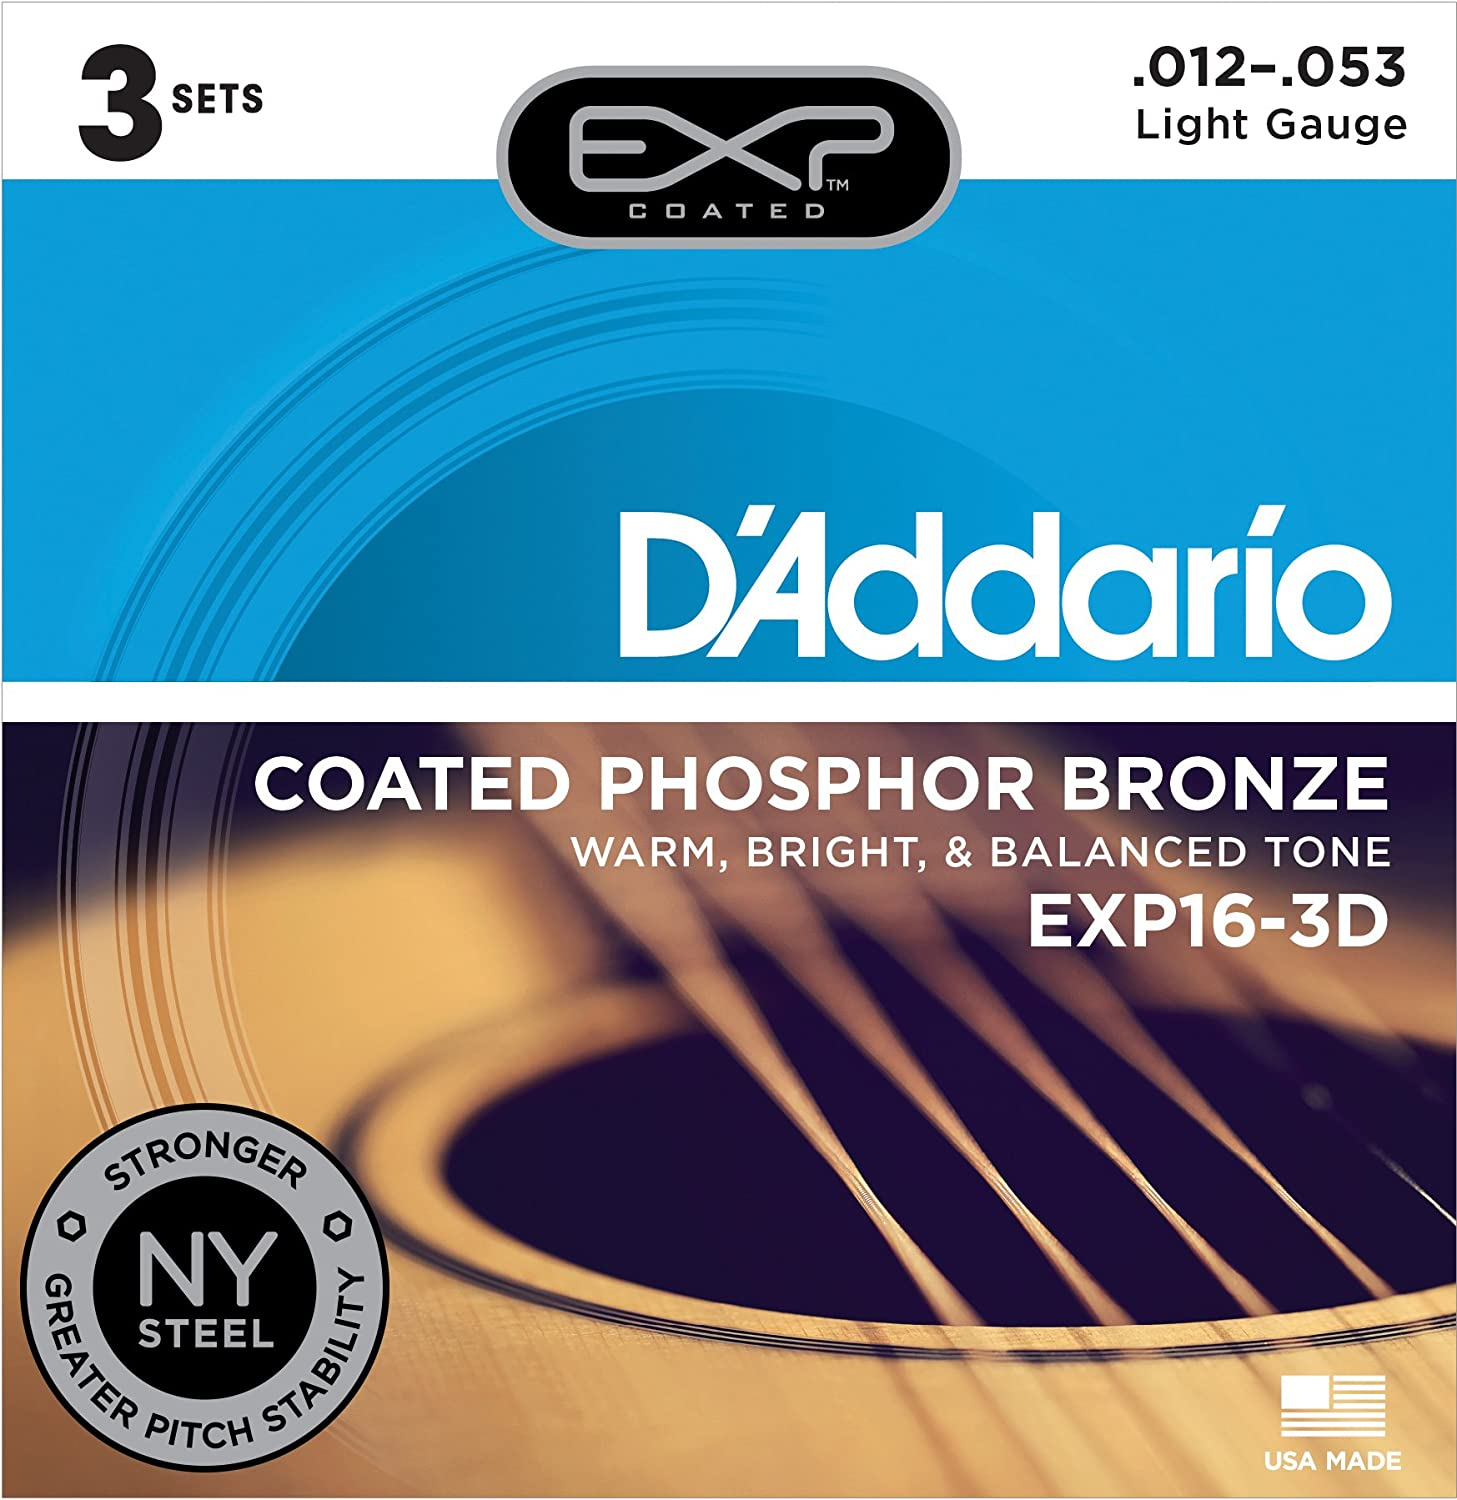 D'Addario EXP16-3D 3-Pack of Light Coated Phosphor Bronze, 12-53 Gauge Guitar Strings D' Addario &Co. Inc